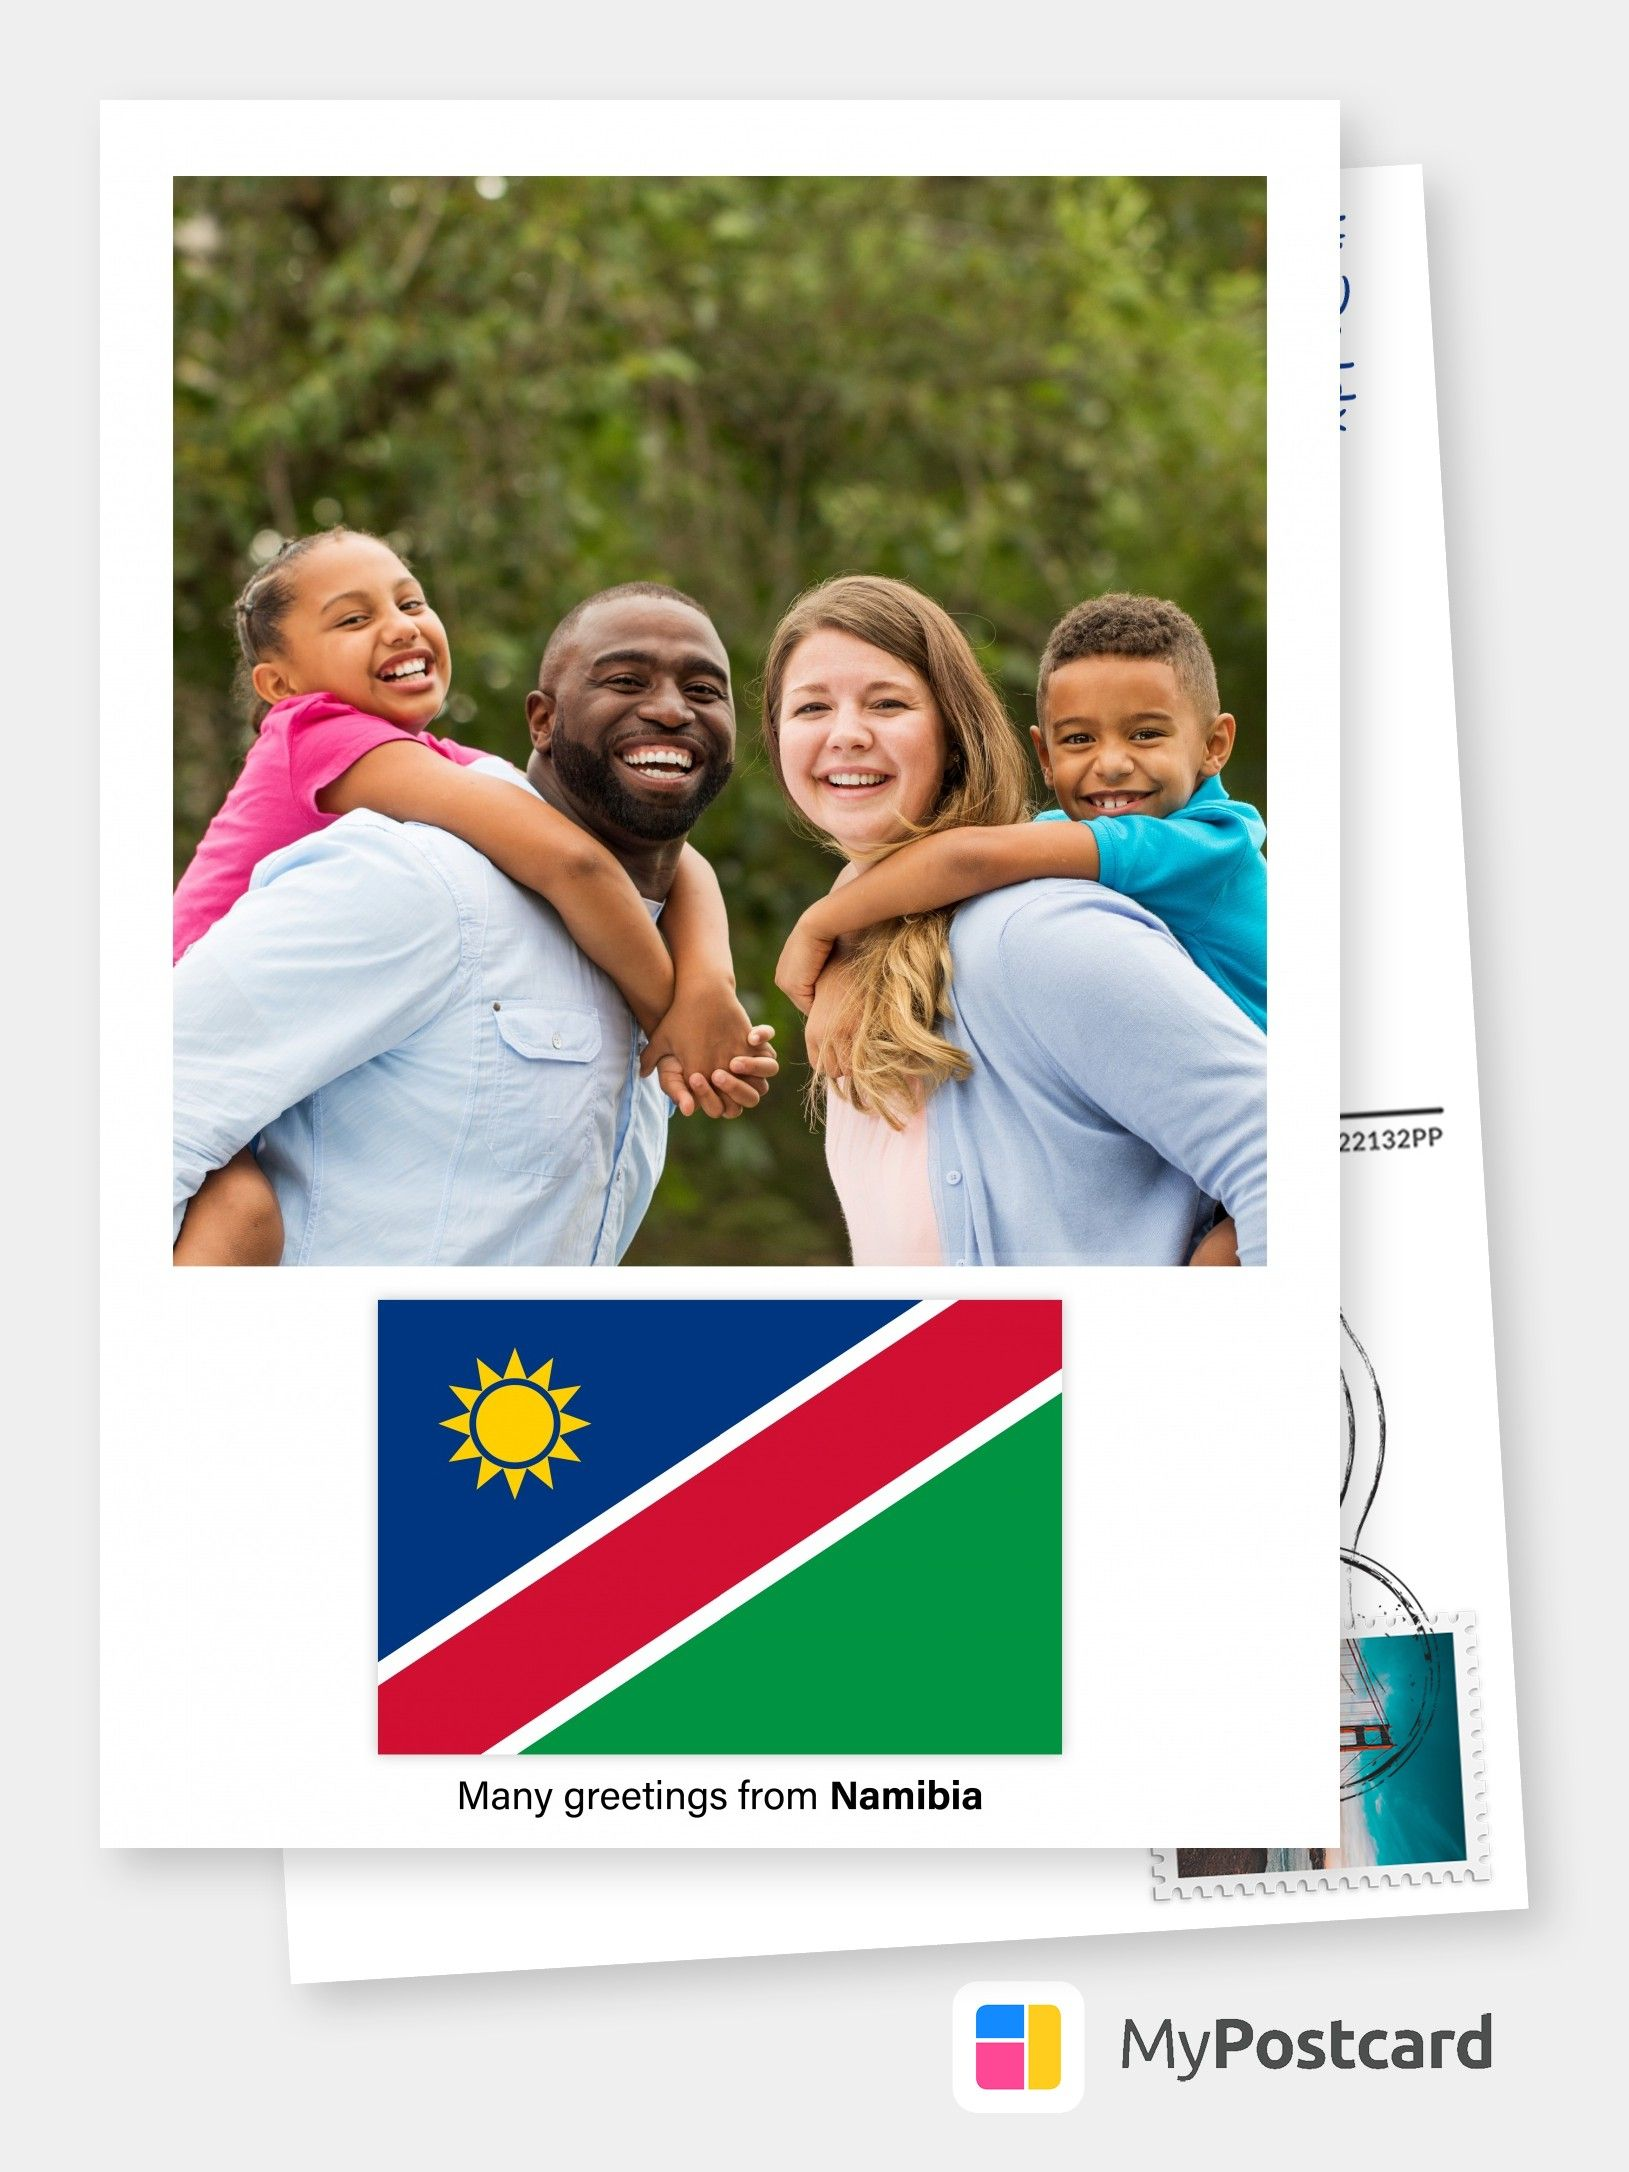 Many Greetings From Namibia Vacation Cards Quotes Send Real Postcards Online In 2020 Urlaub Grusse Urlaubsgrusse Urlaubsgrusse Postkarte